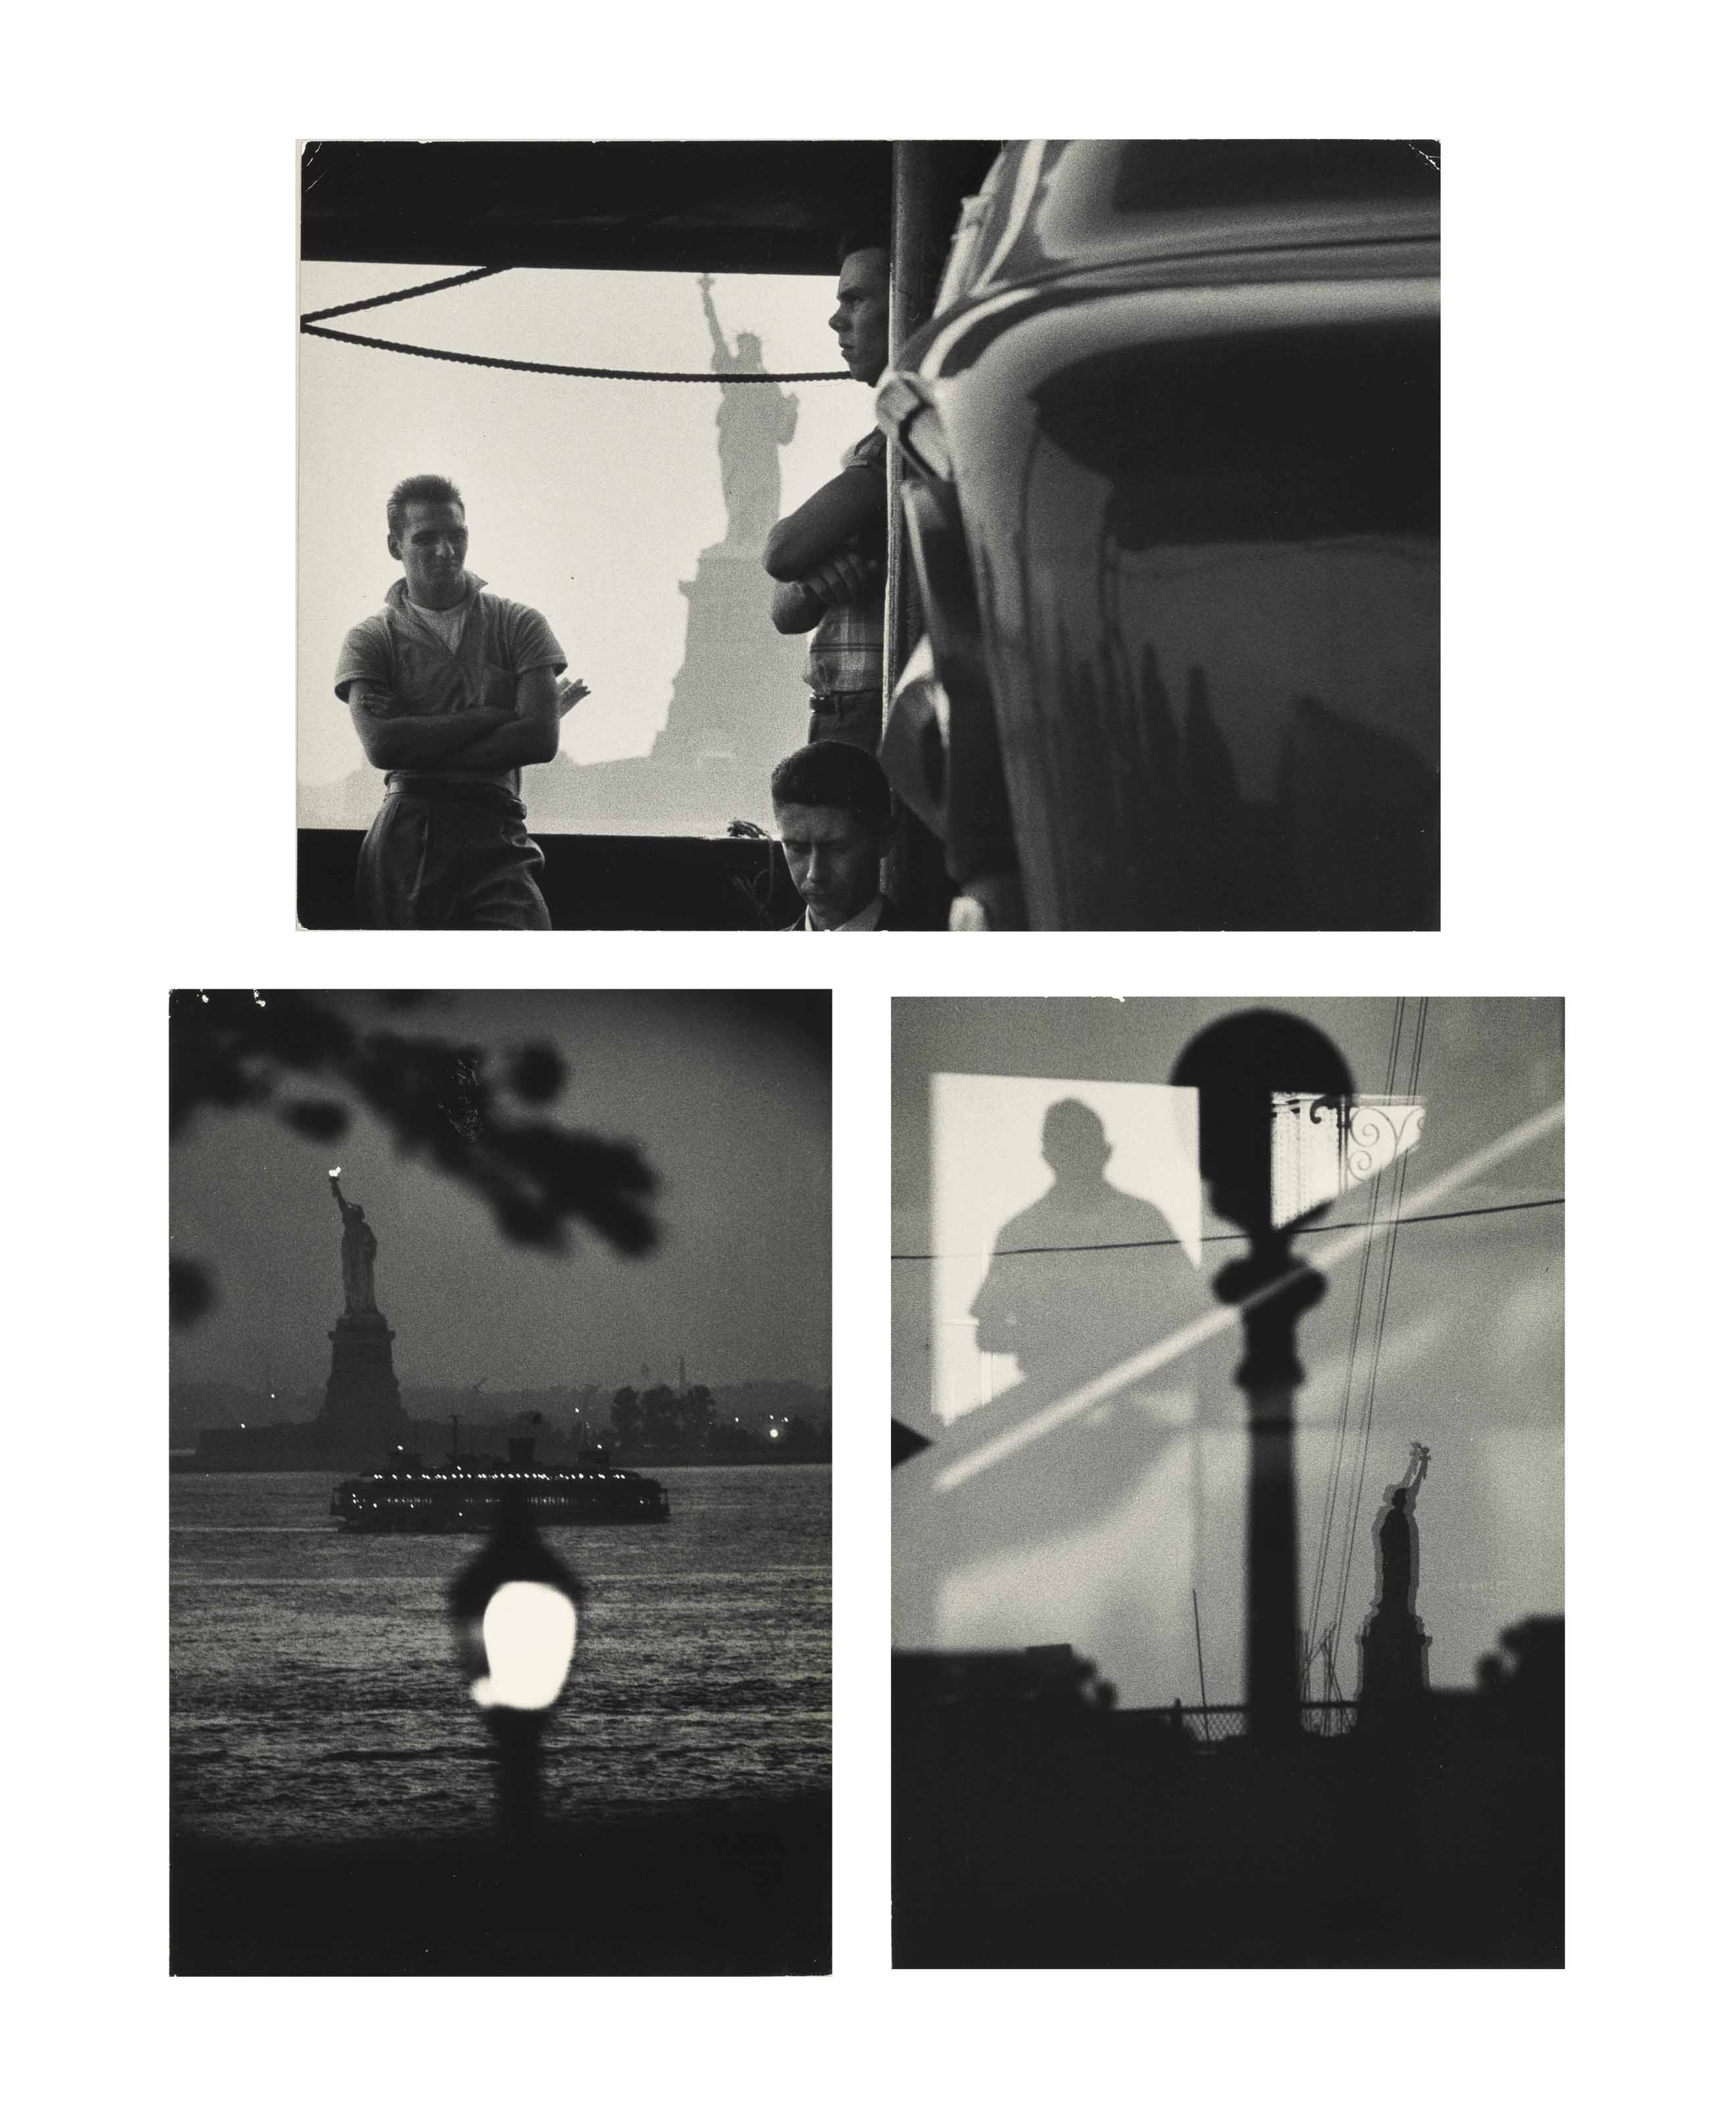 Views of the Statue of Liberty, New York, 1958